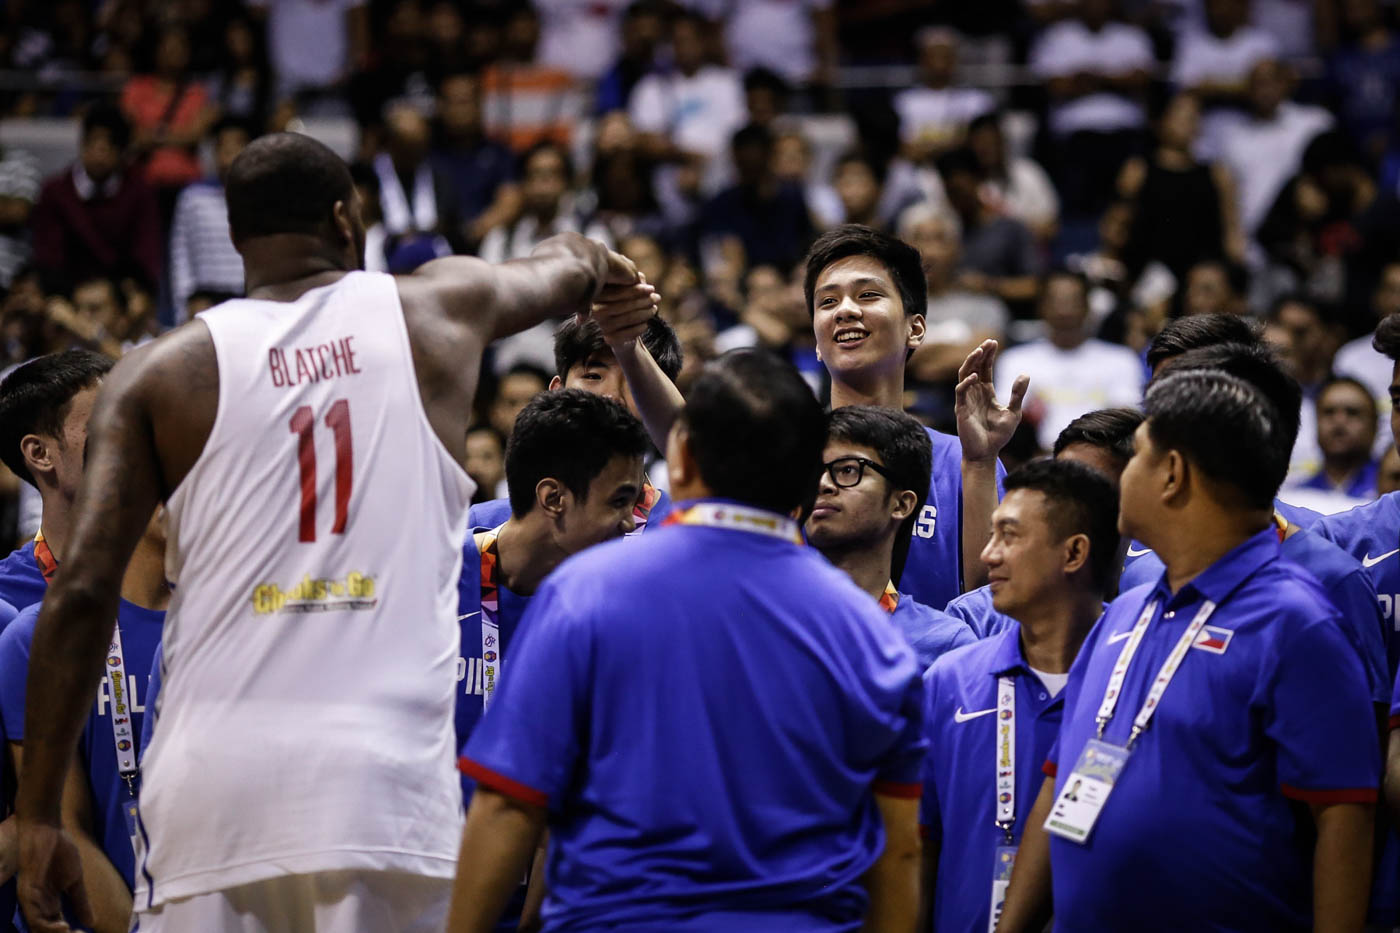 PRESENT, FUTURE. Andray Blatche shakes hands with Batang Gilas star Kai Sotto as the U16 winners were also awarded. Photo by Josh Albelda/Rappler